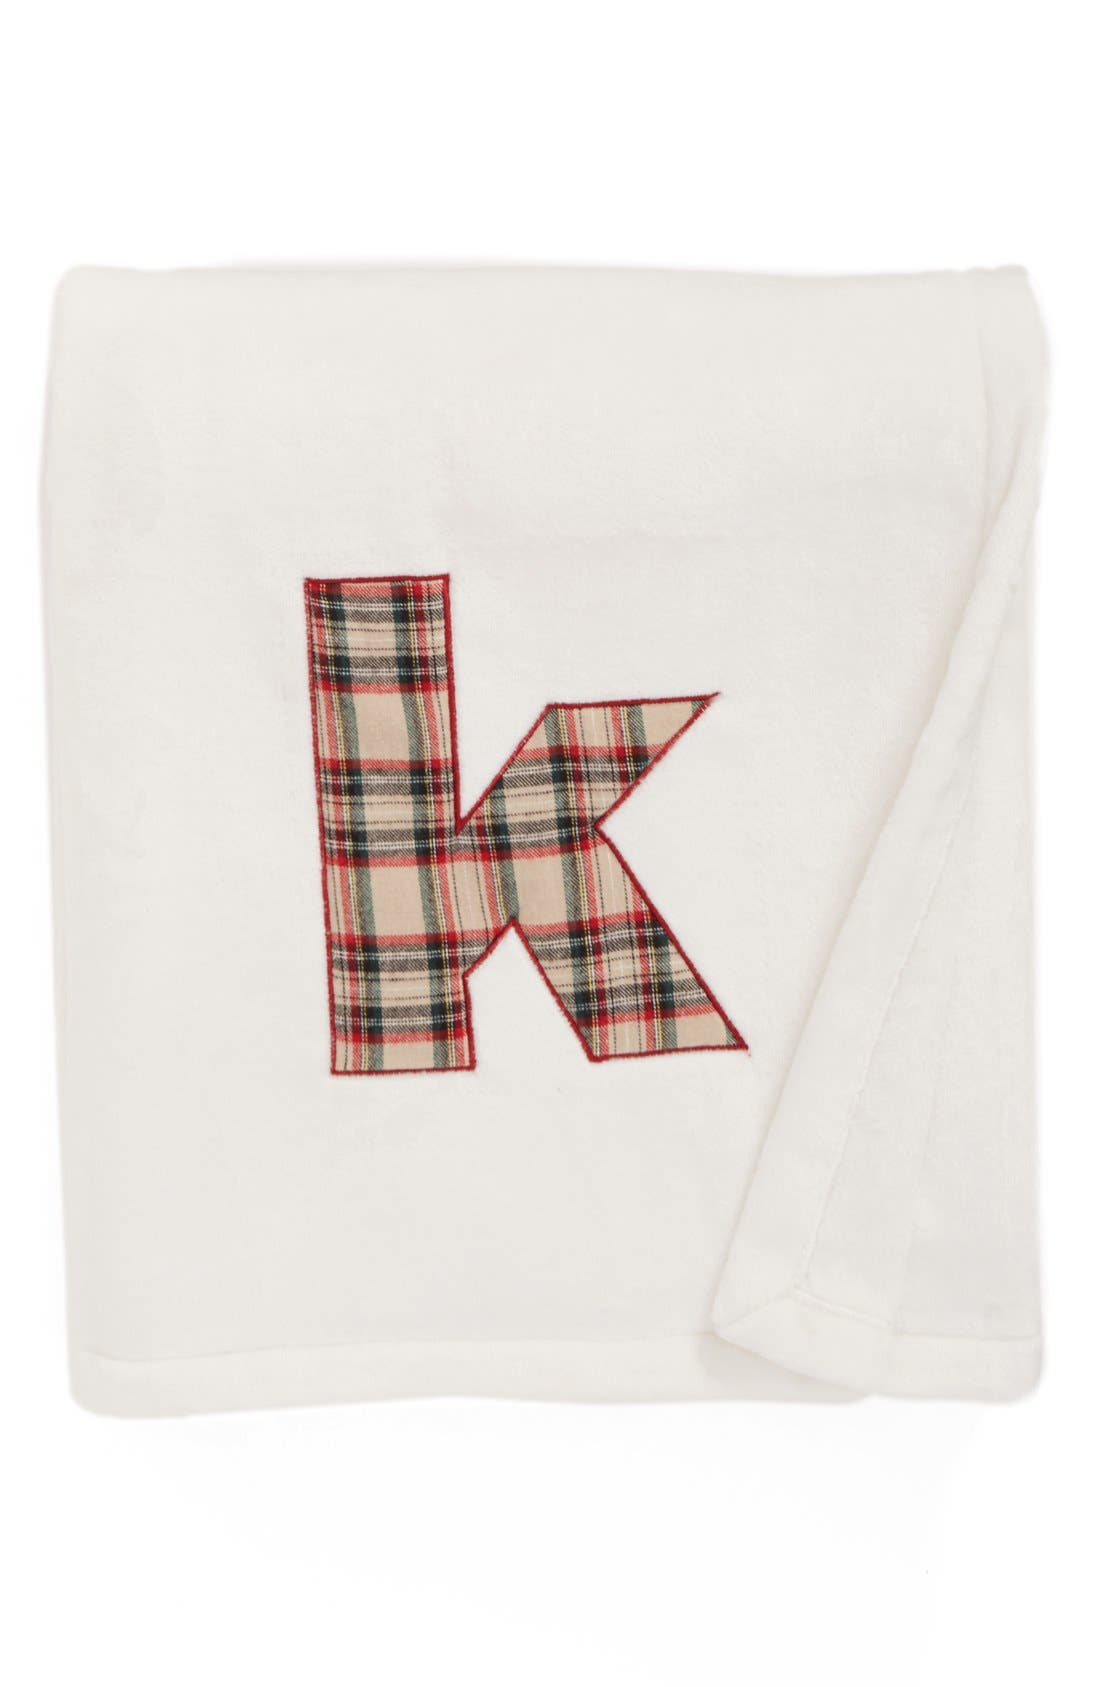 Alternate Image 1 Selected - Levtex Plaid Initial Plush Throw Blanket